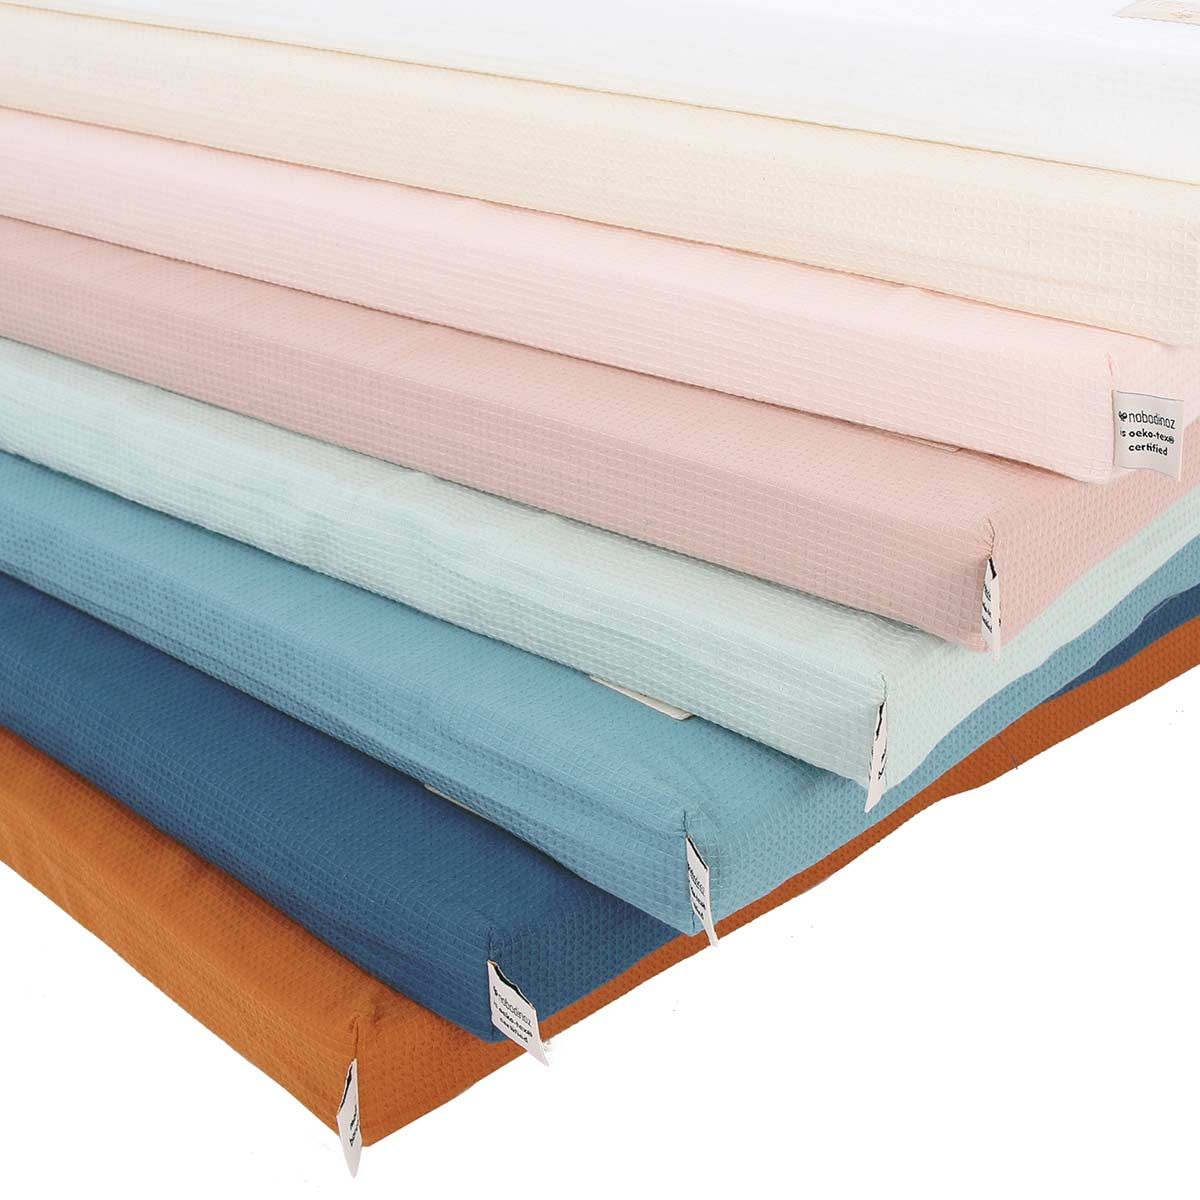 Matelas de sol en coton nid d´abeille St Barth Magic Green Nobodinoz